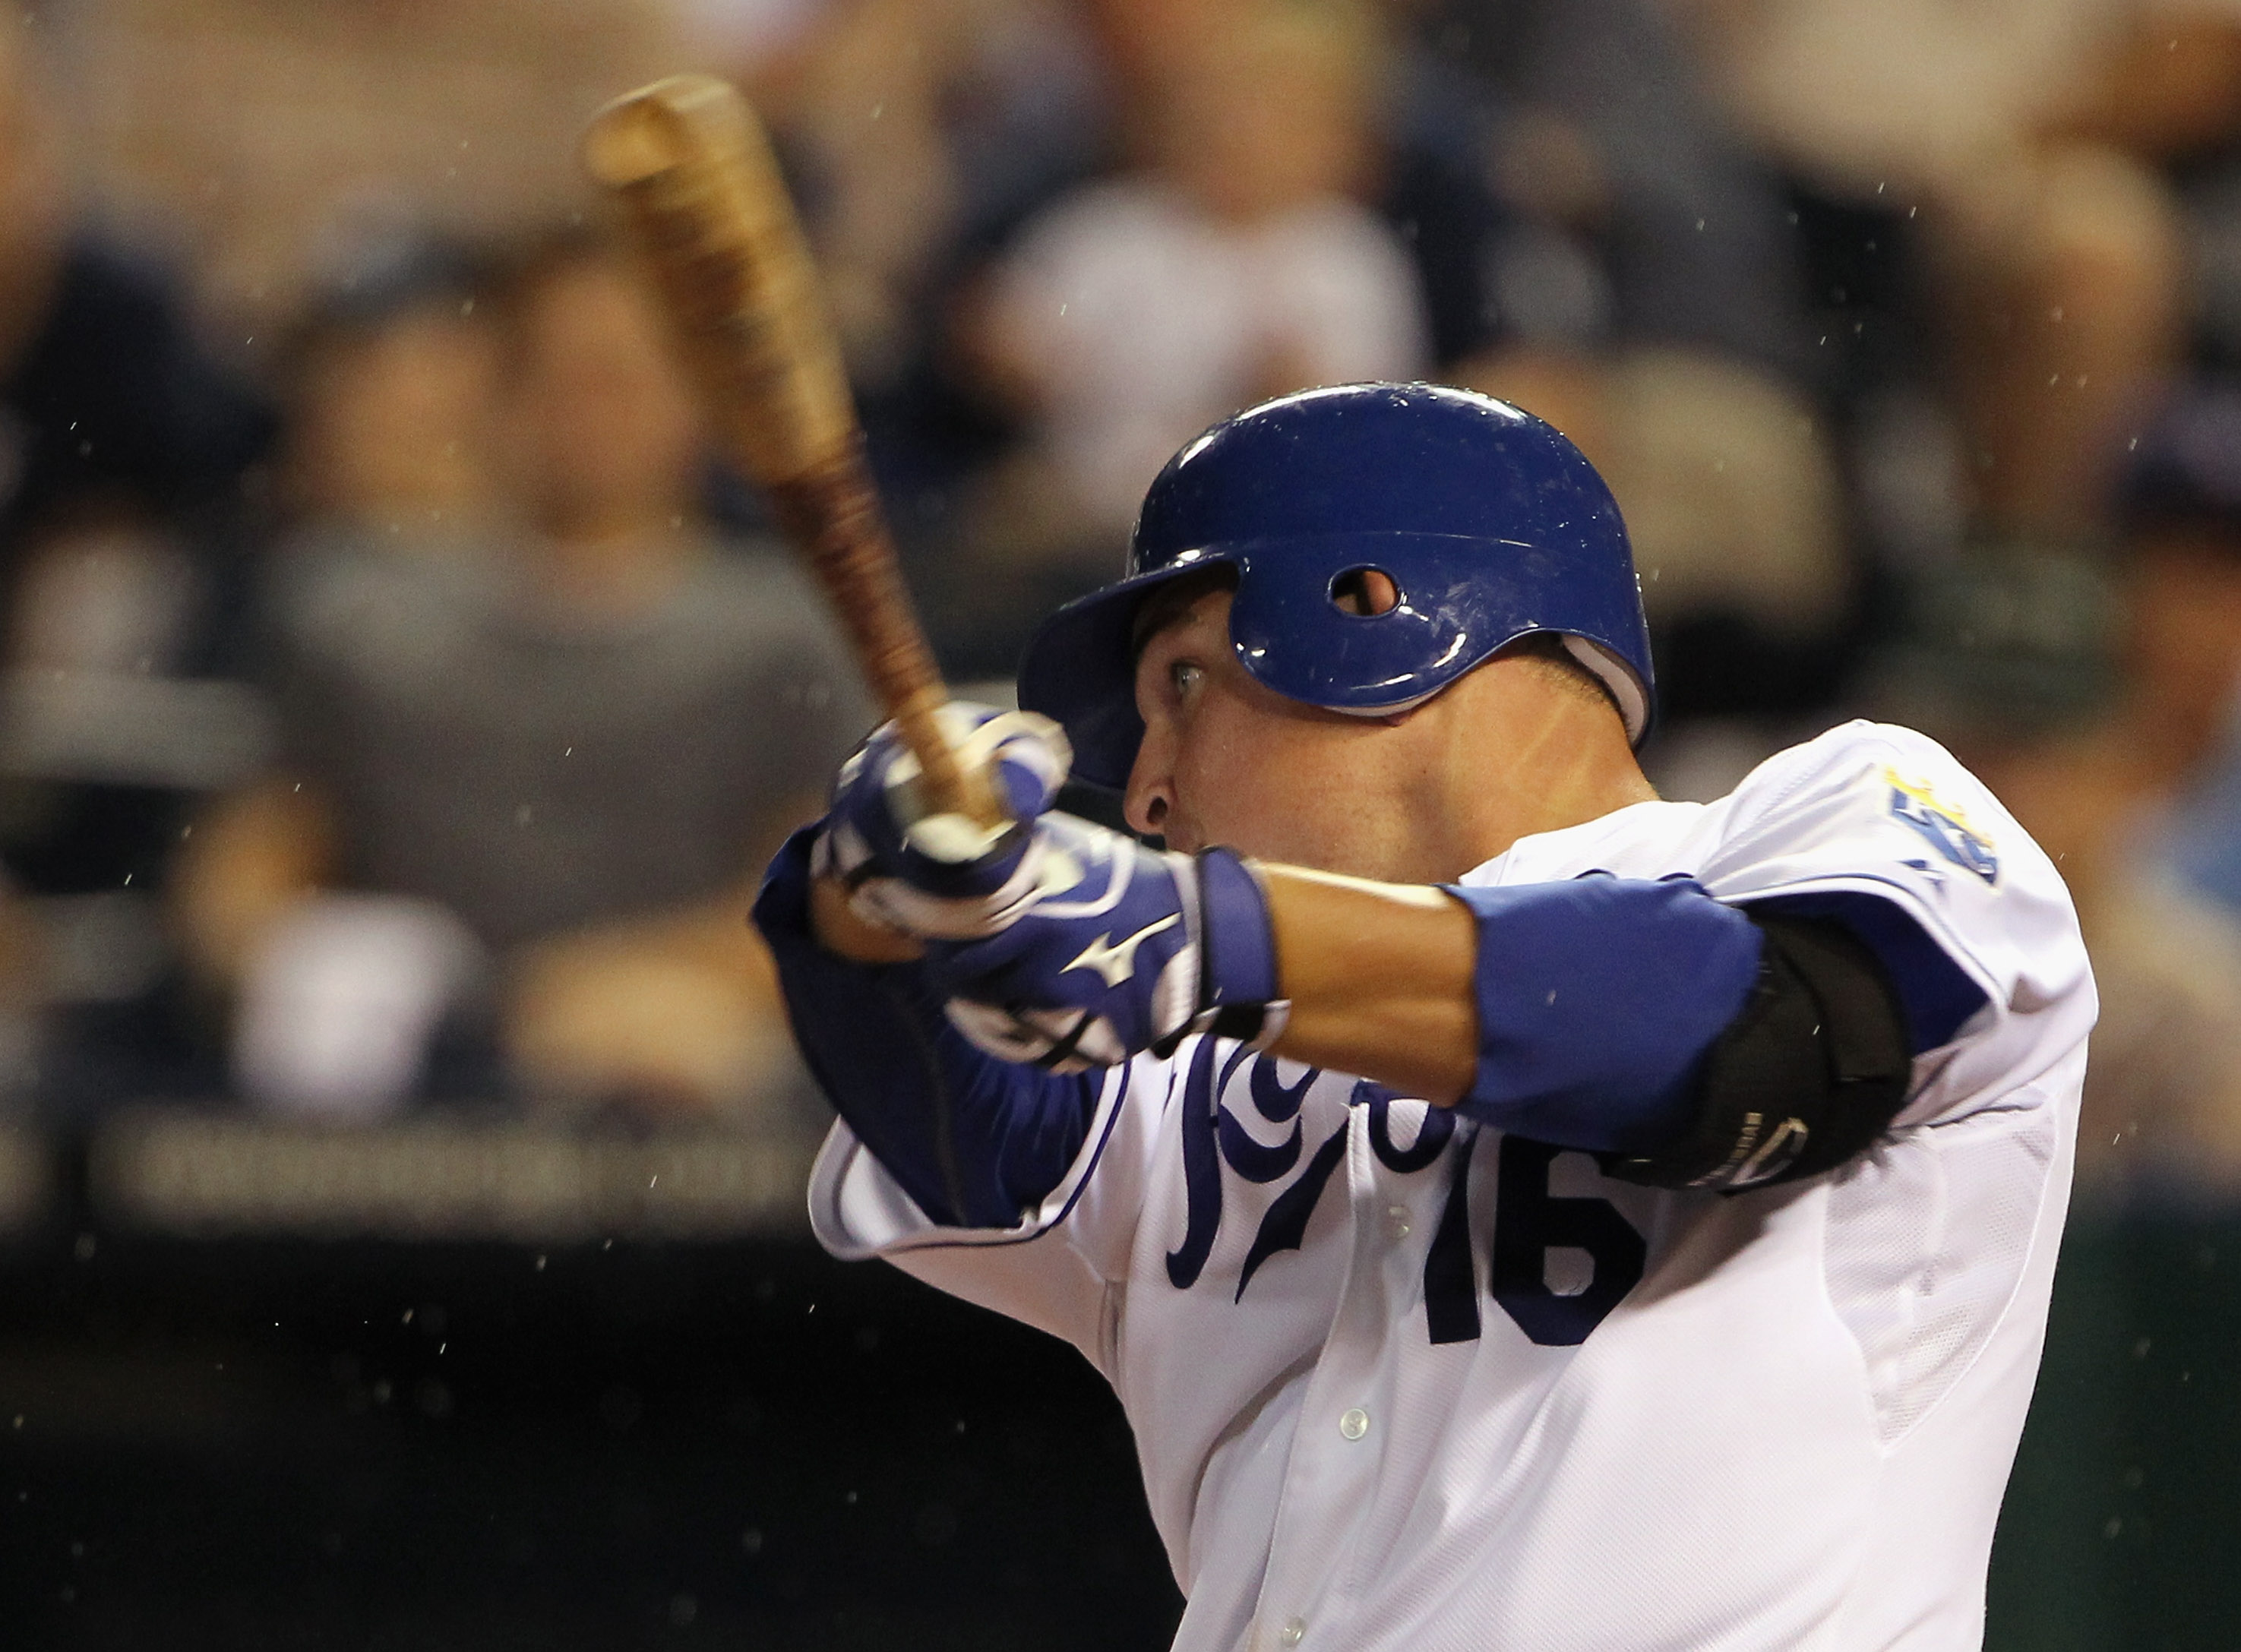 KANSAS CITY, MO - AUGUST 13:  Billy Butler #16 of the Kansas City Royals hits a home run duirng the 5th inning of the game against the New York Yankees on August 13, 2010 at Kauffman Stadium in Kansas City, Missouri.  (Photo by Jamie Squire/Getty Images)